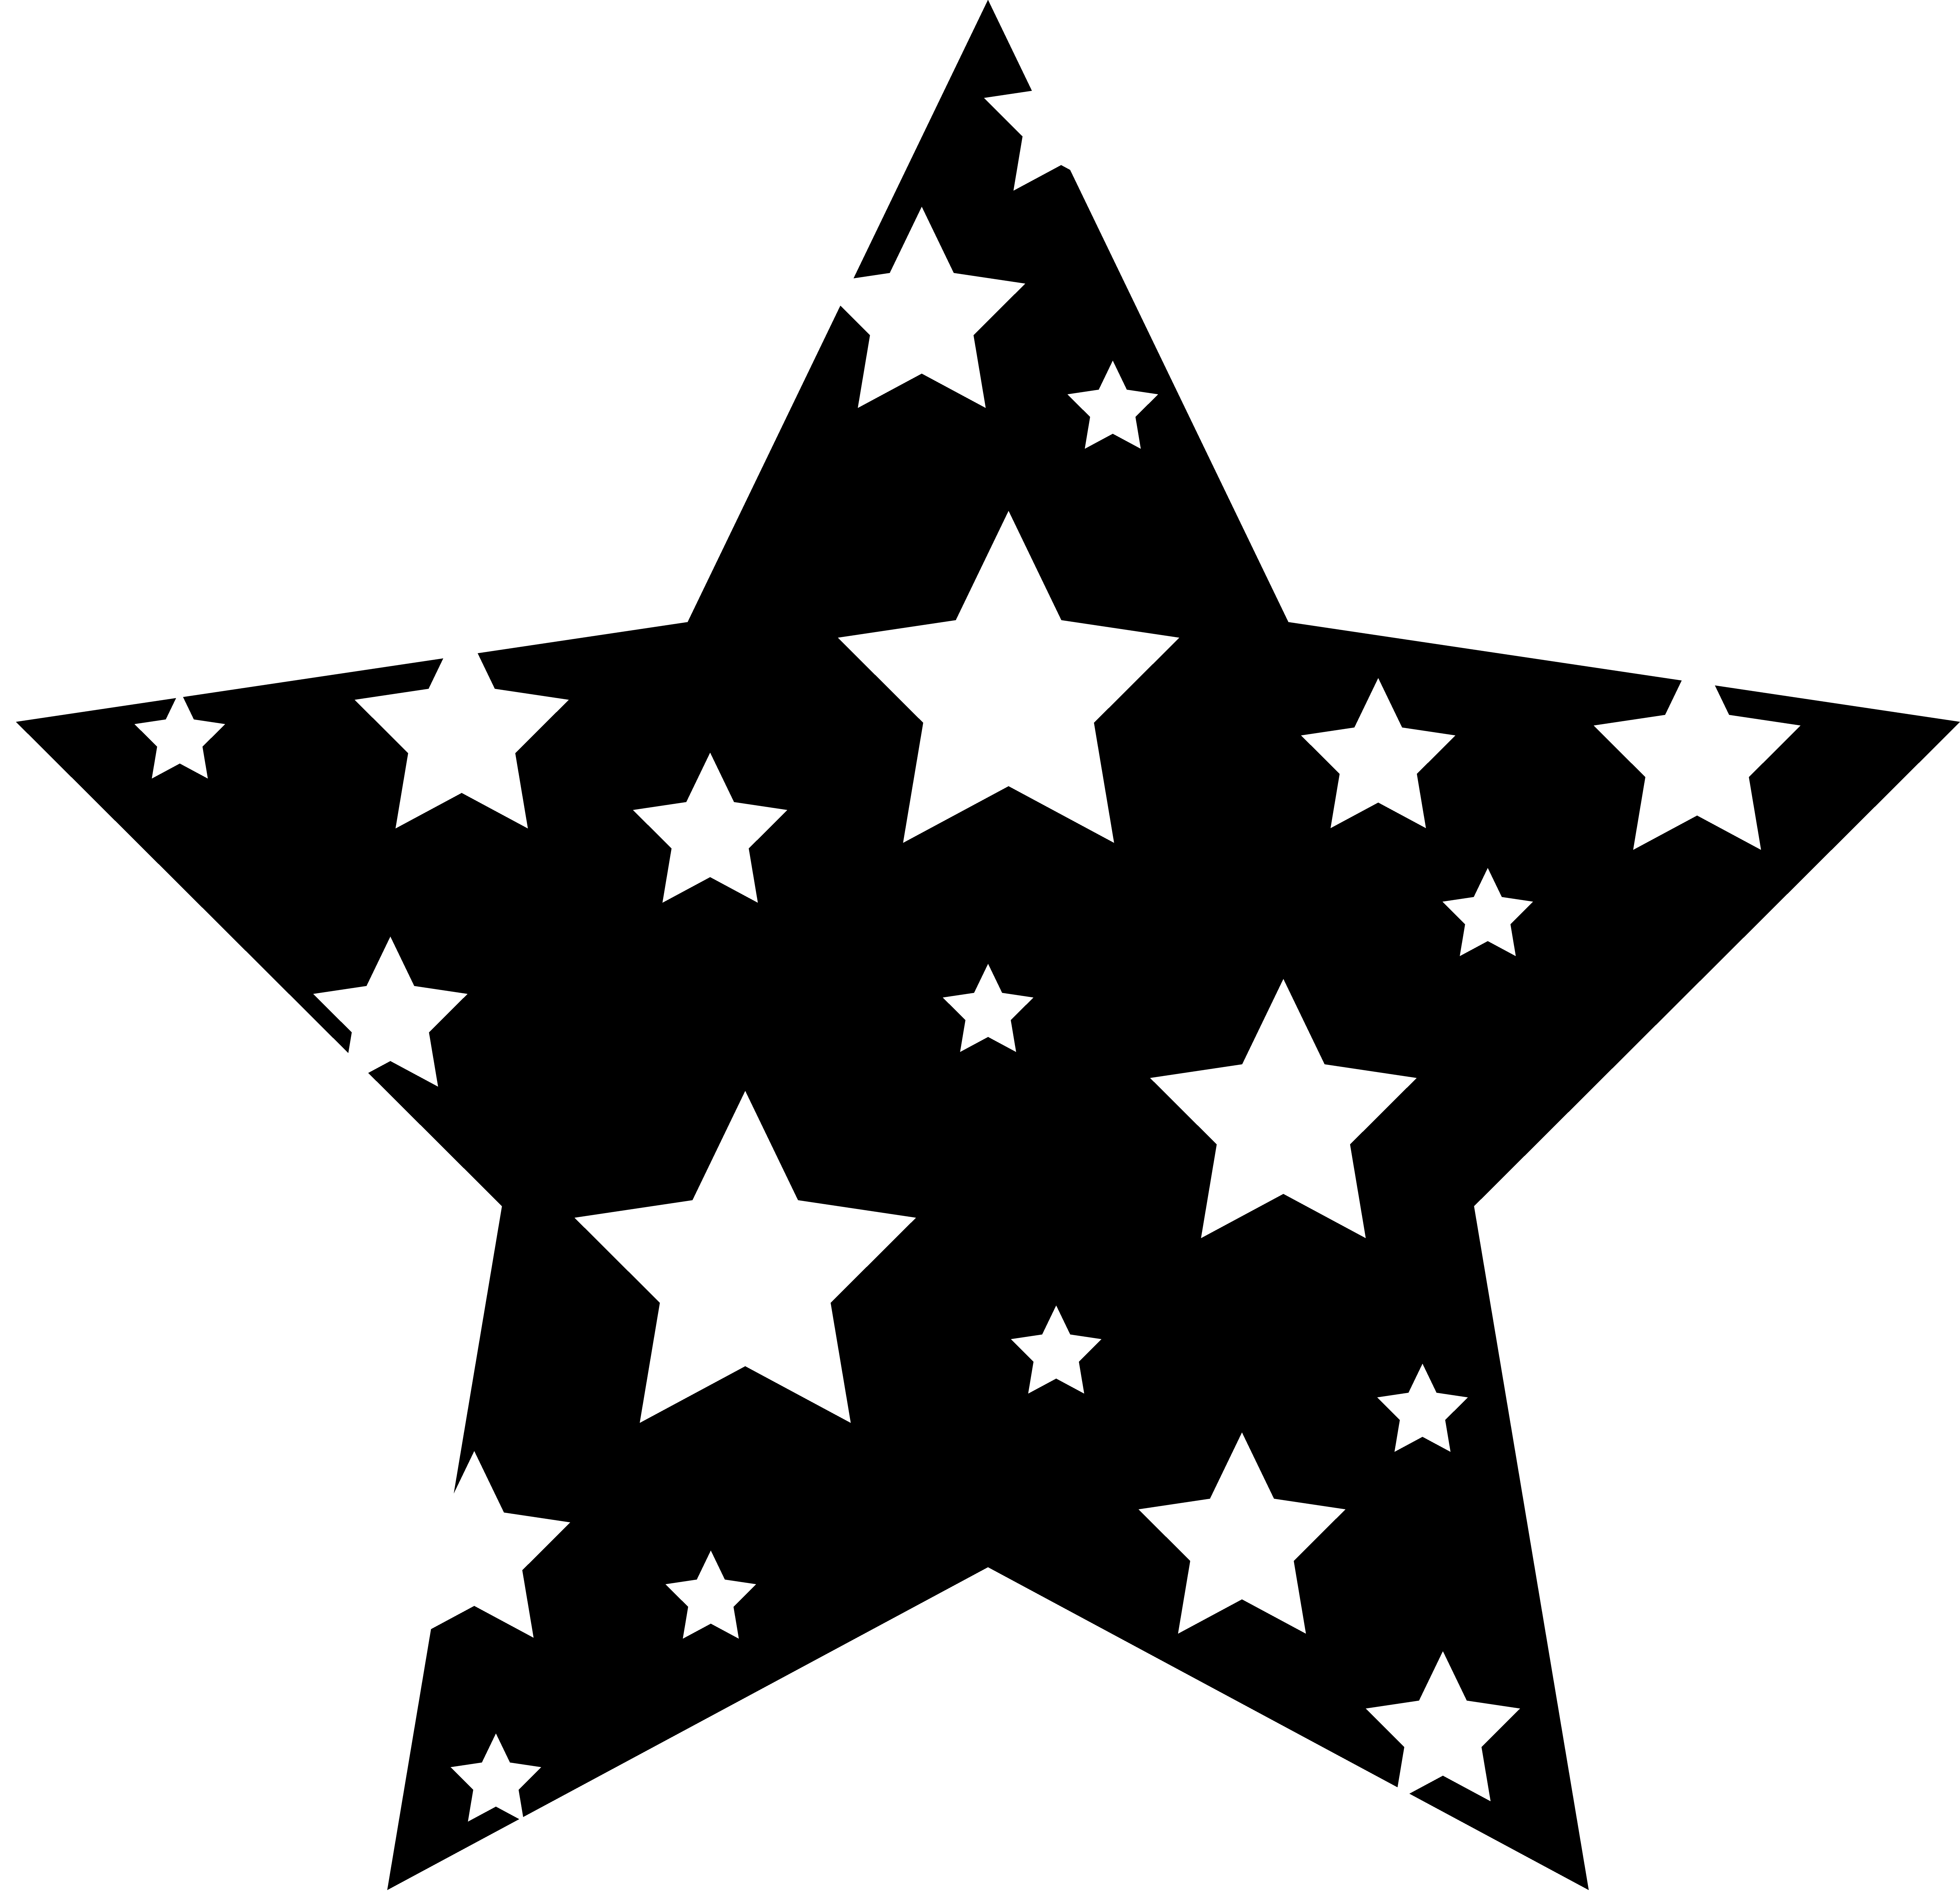 Explosions clipart border Free Black And Star